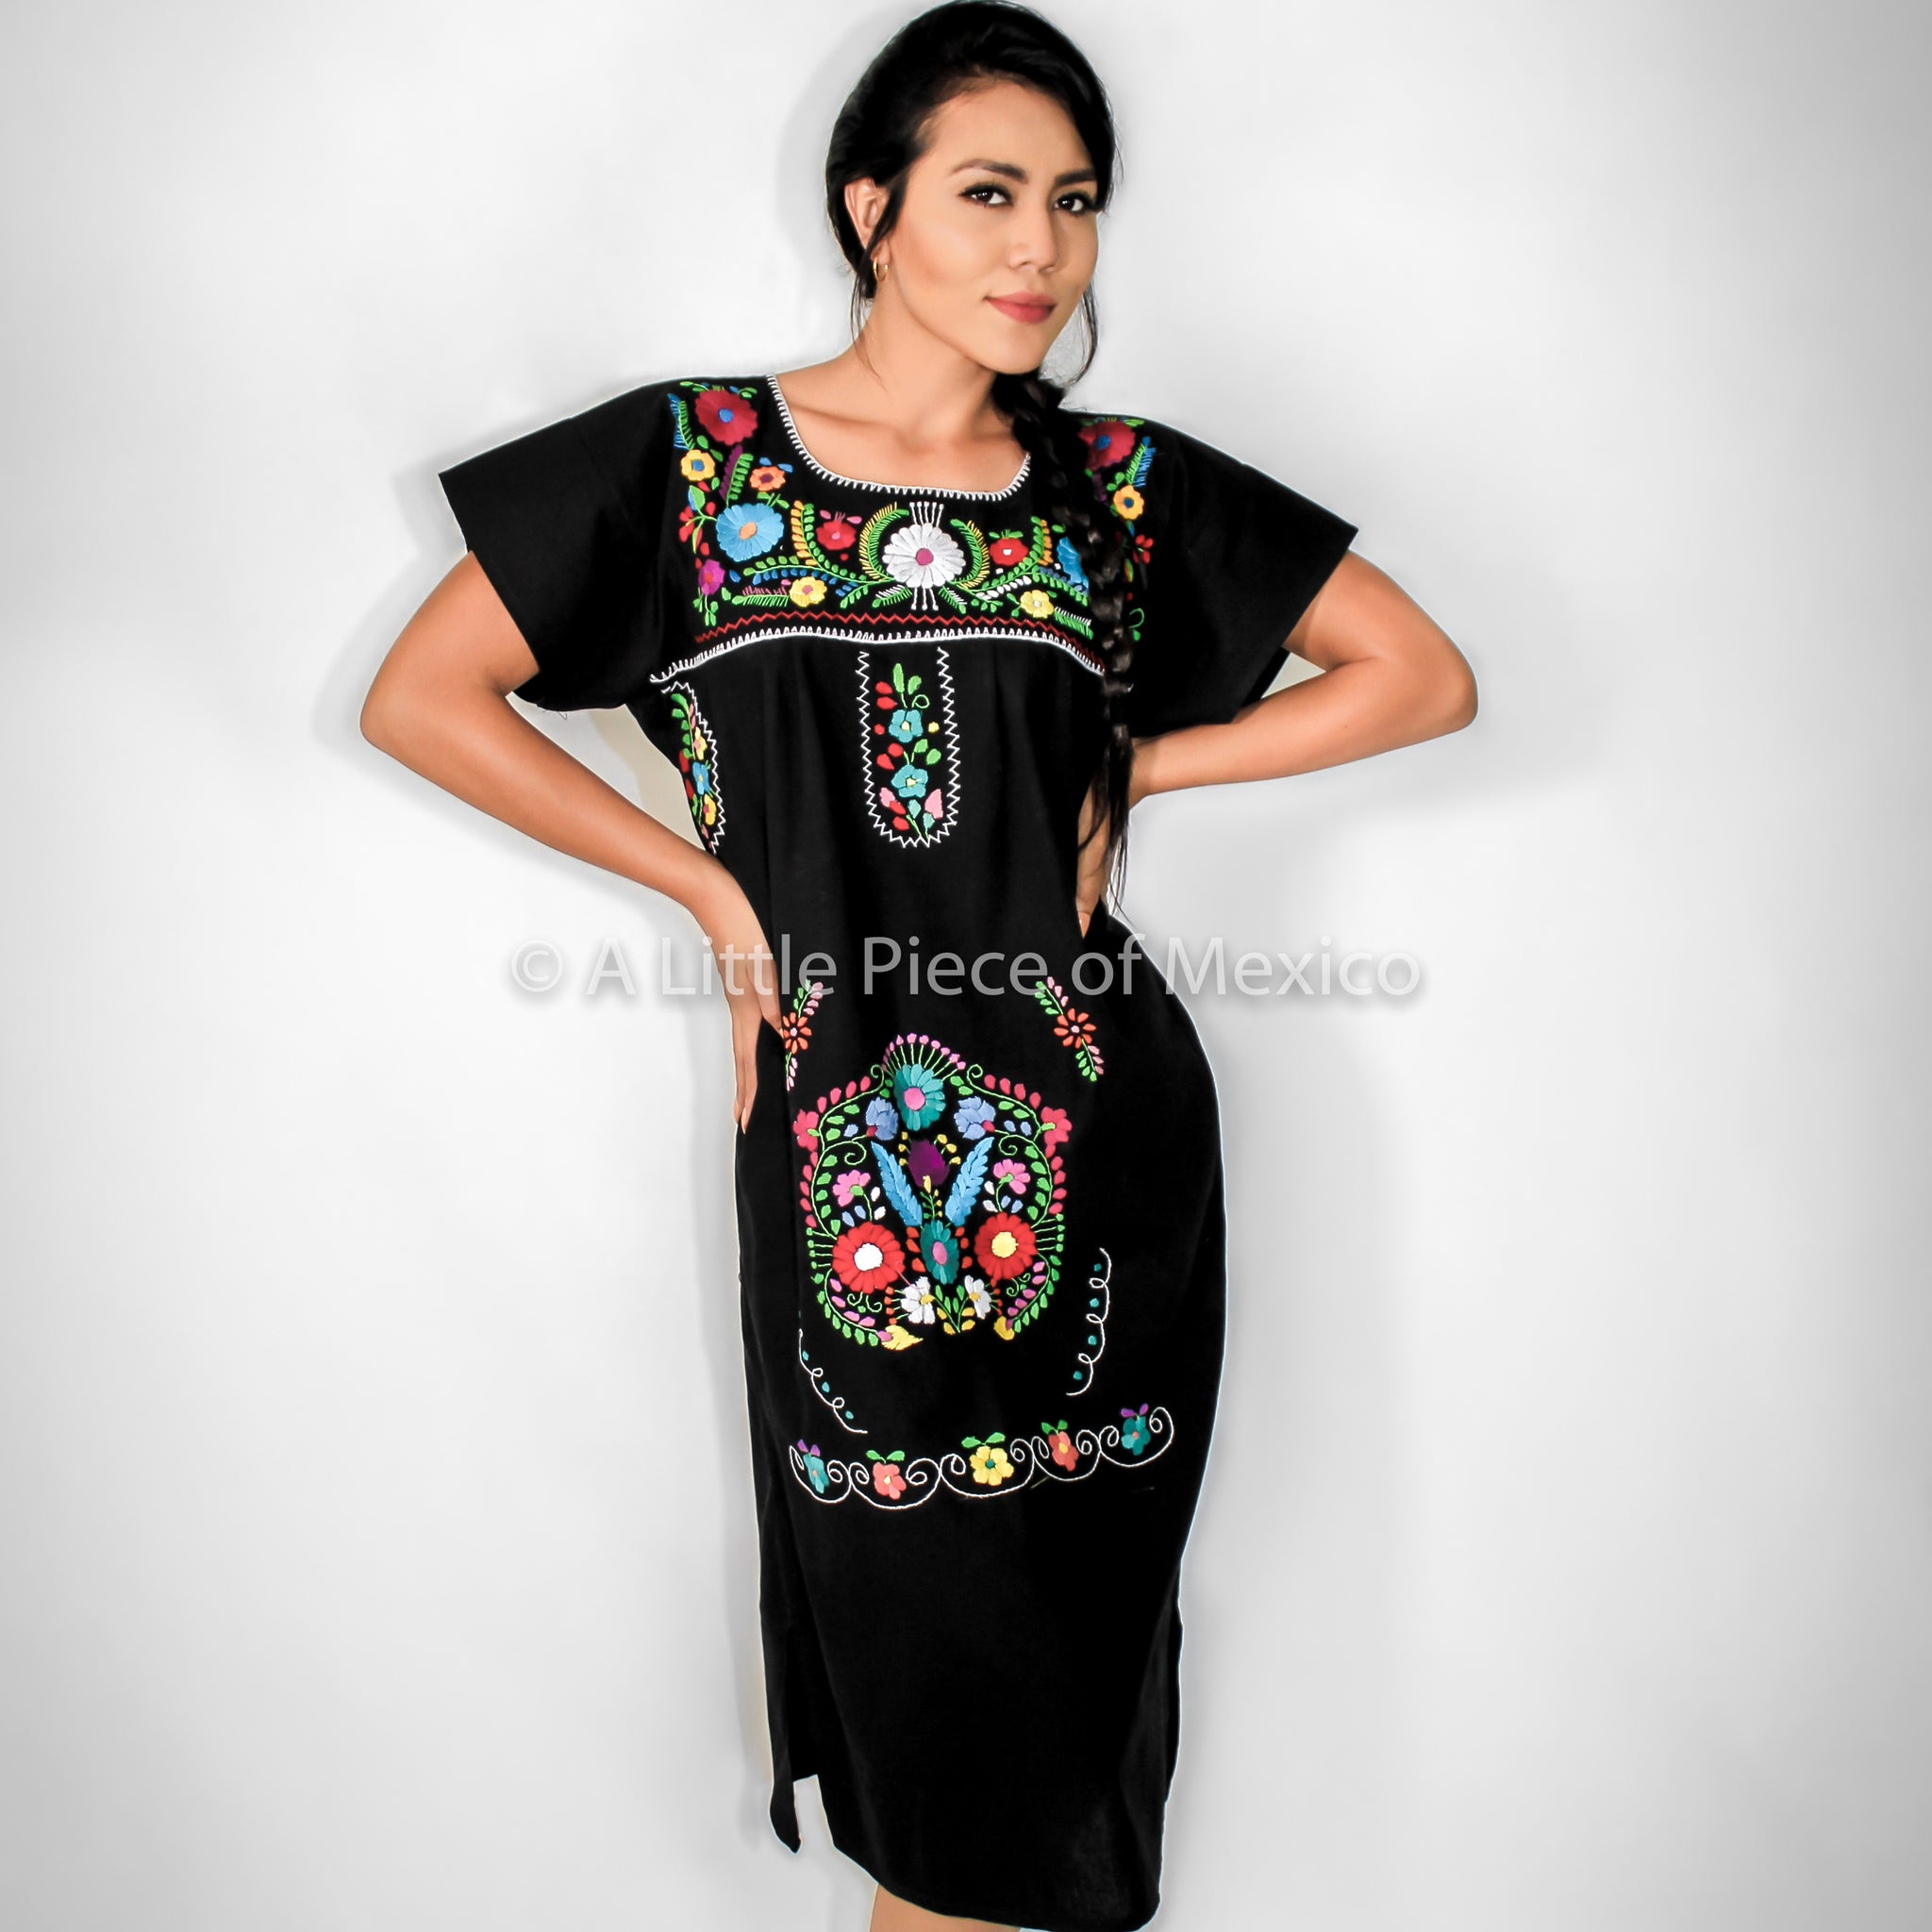 Black Mexican Dress Handmade Mexican Embroidered Dresses And Vintage  Treasures From